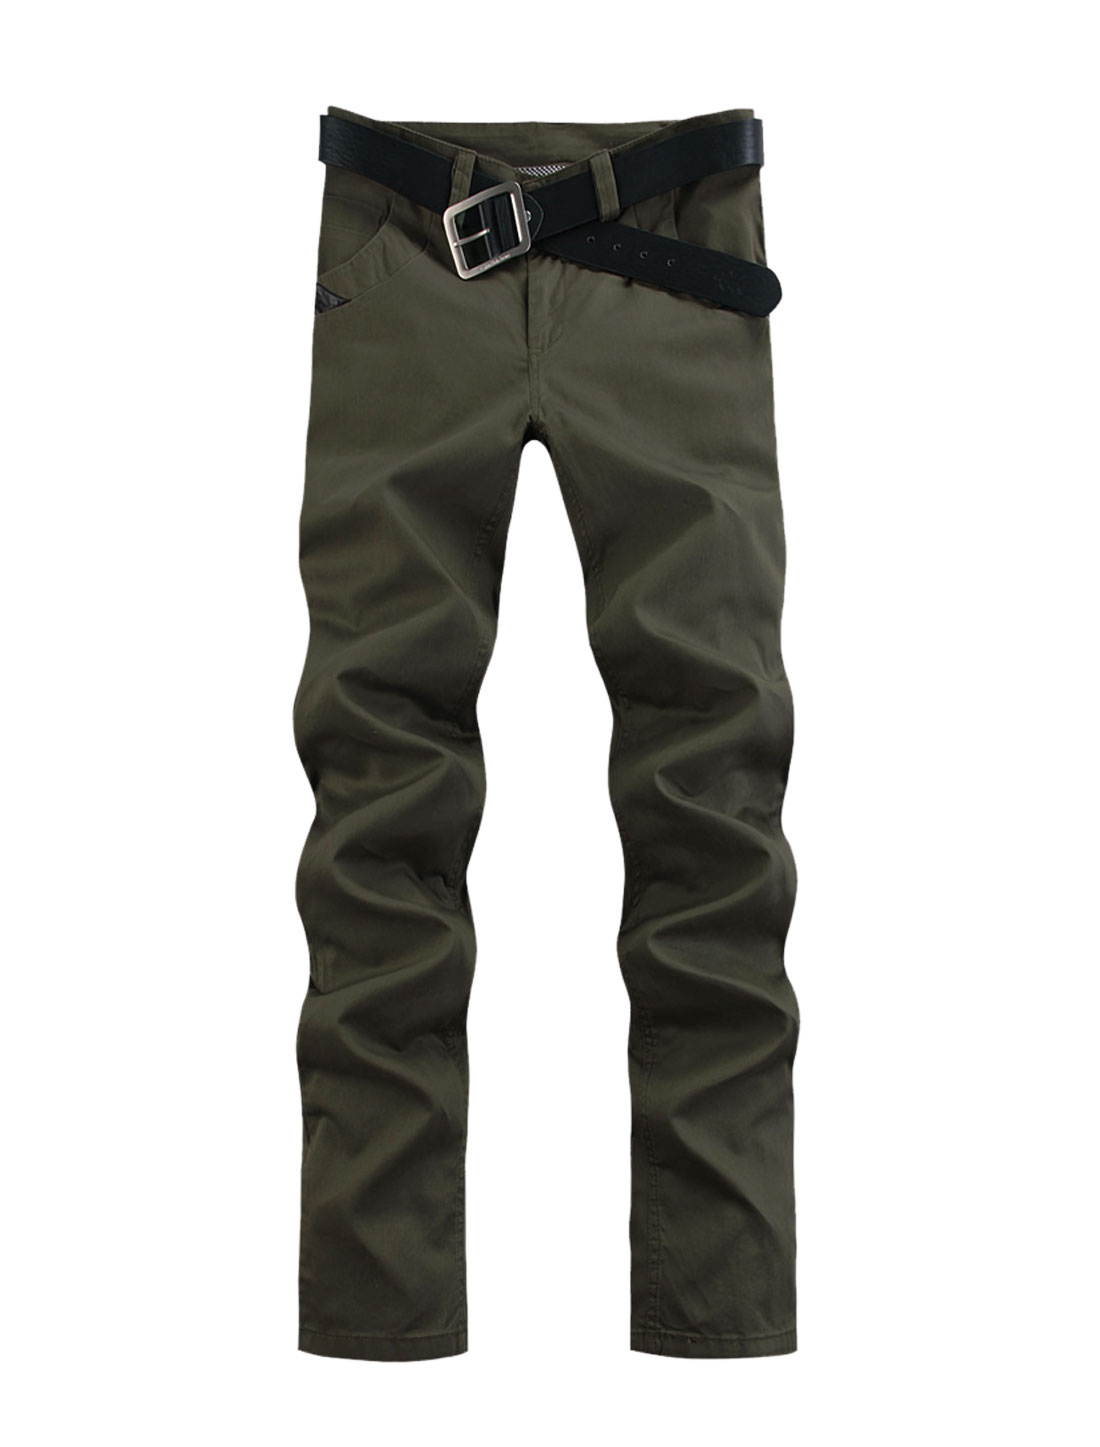 Men Belt Loop Imitation Leather Casual Pants Army Green W36